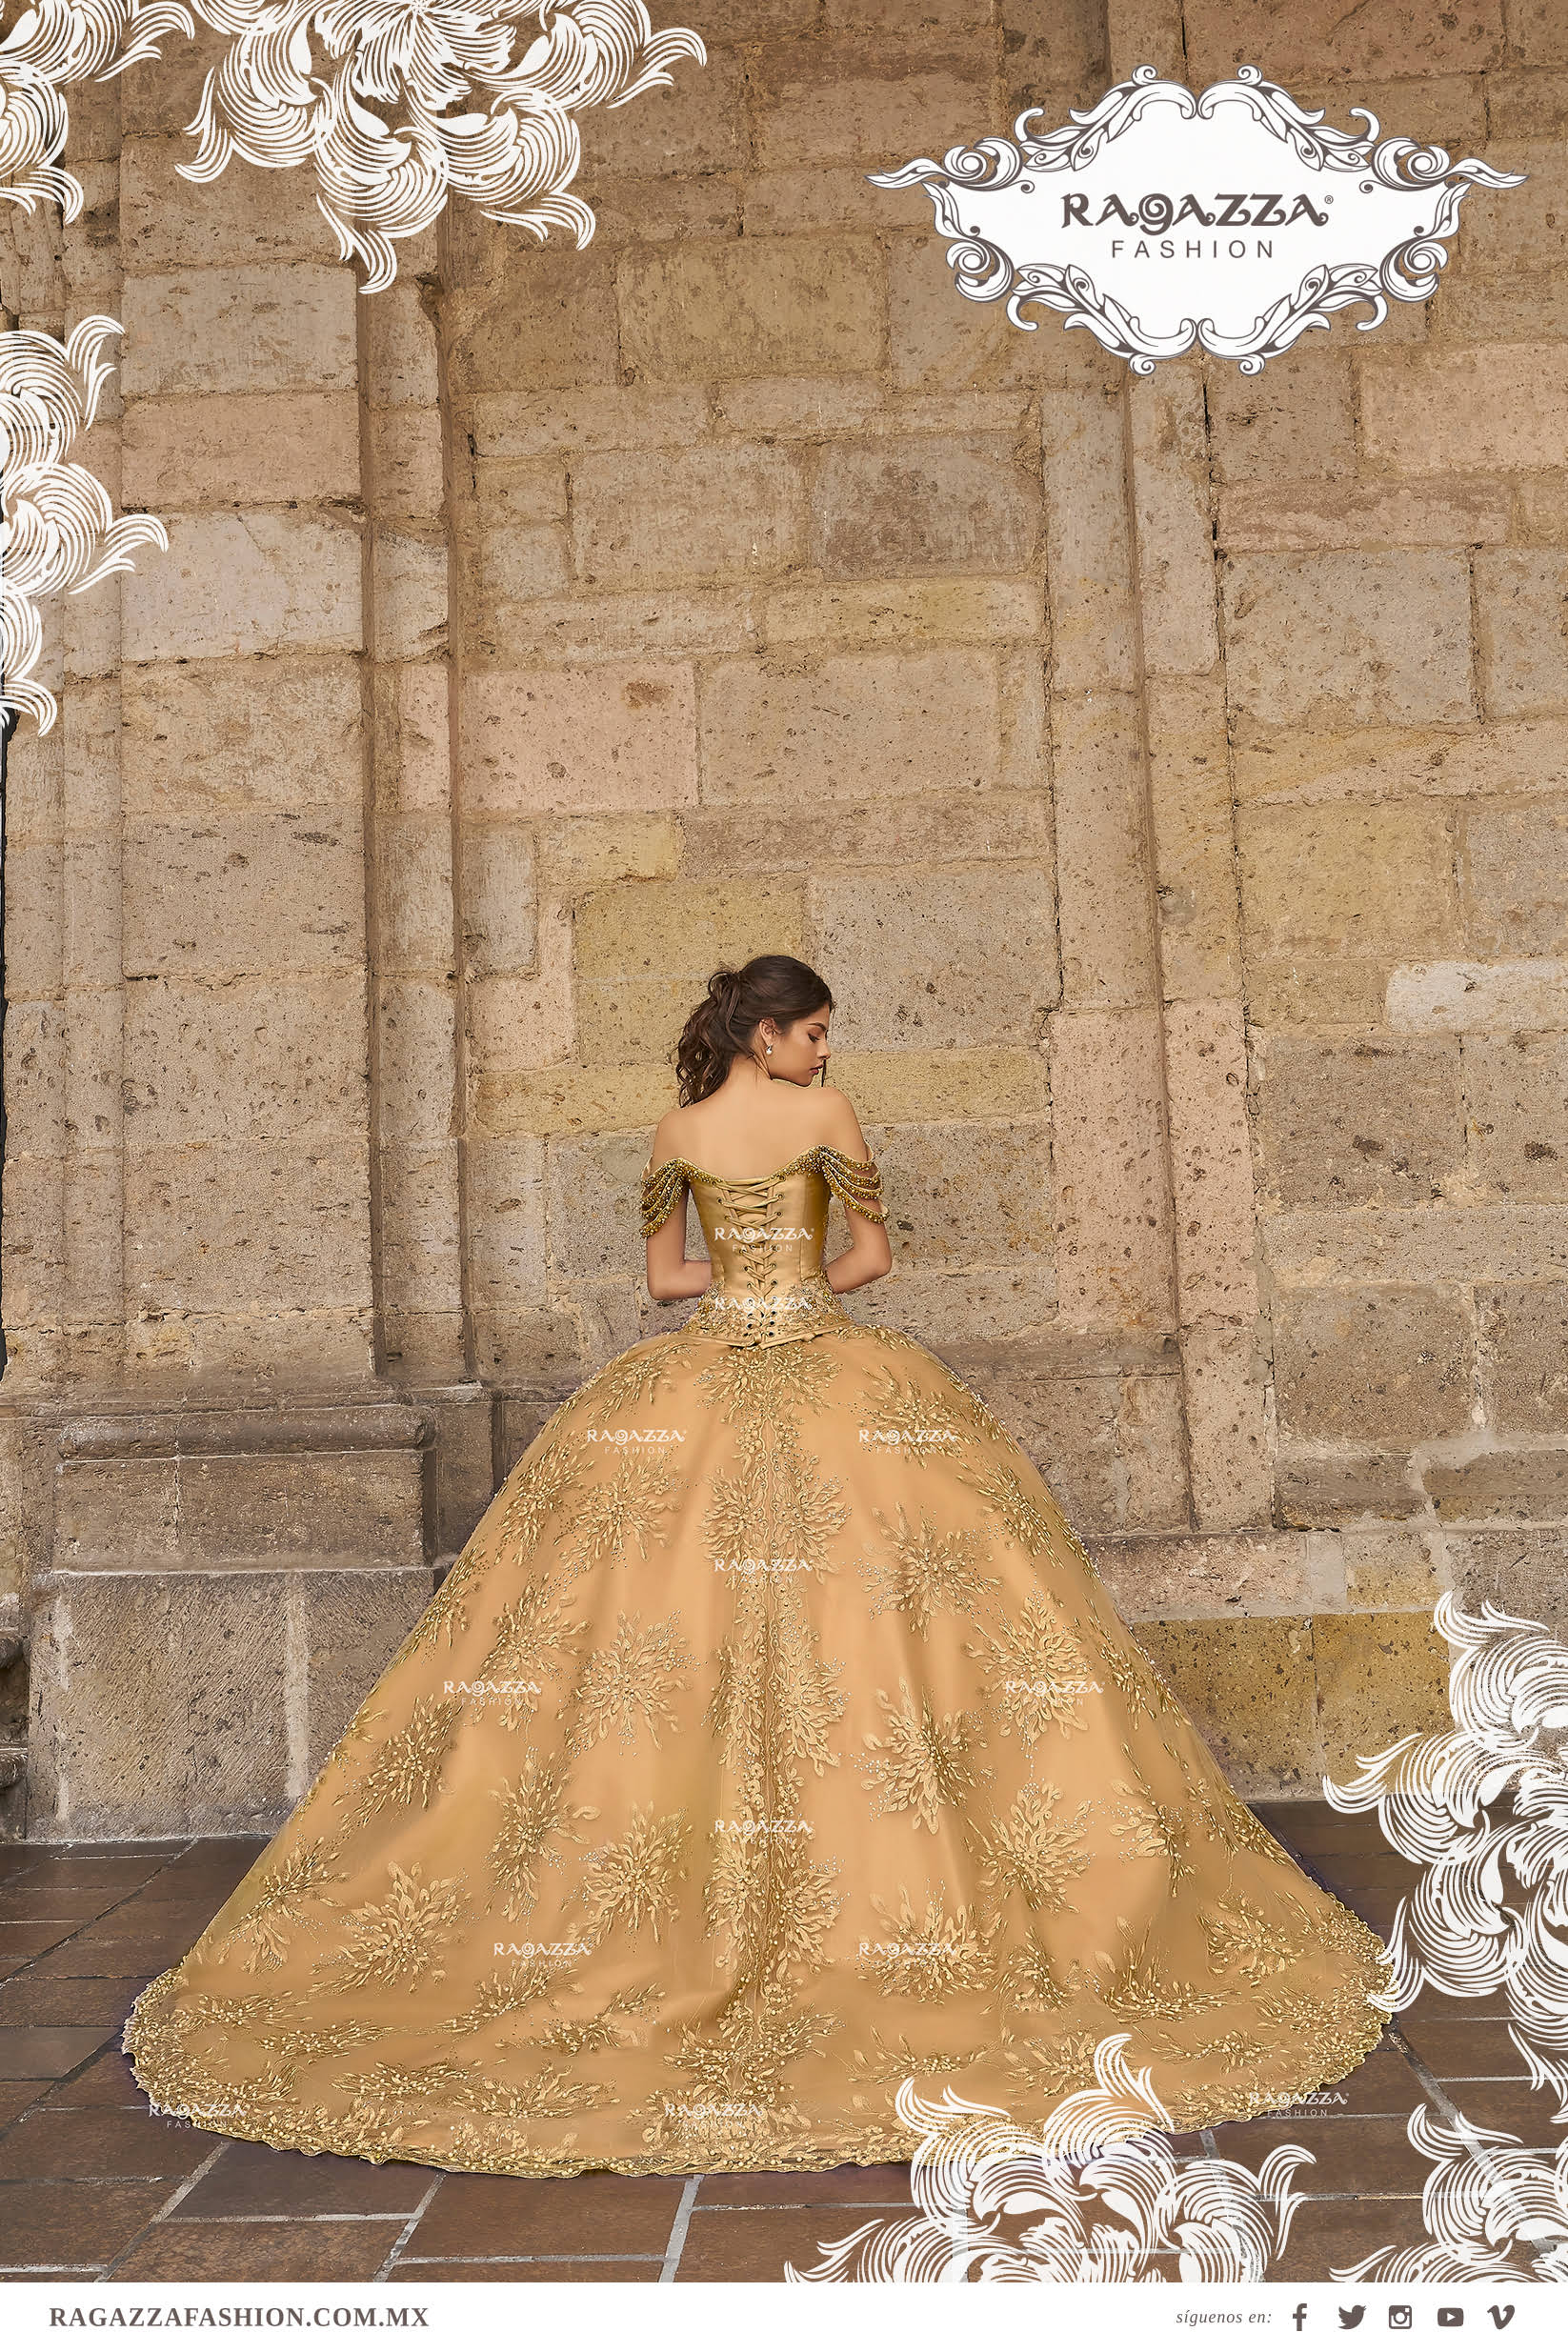 Tendencias 2018 Para Quinceañeras Ragazza Fashion